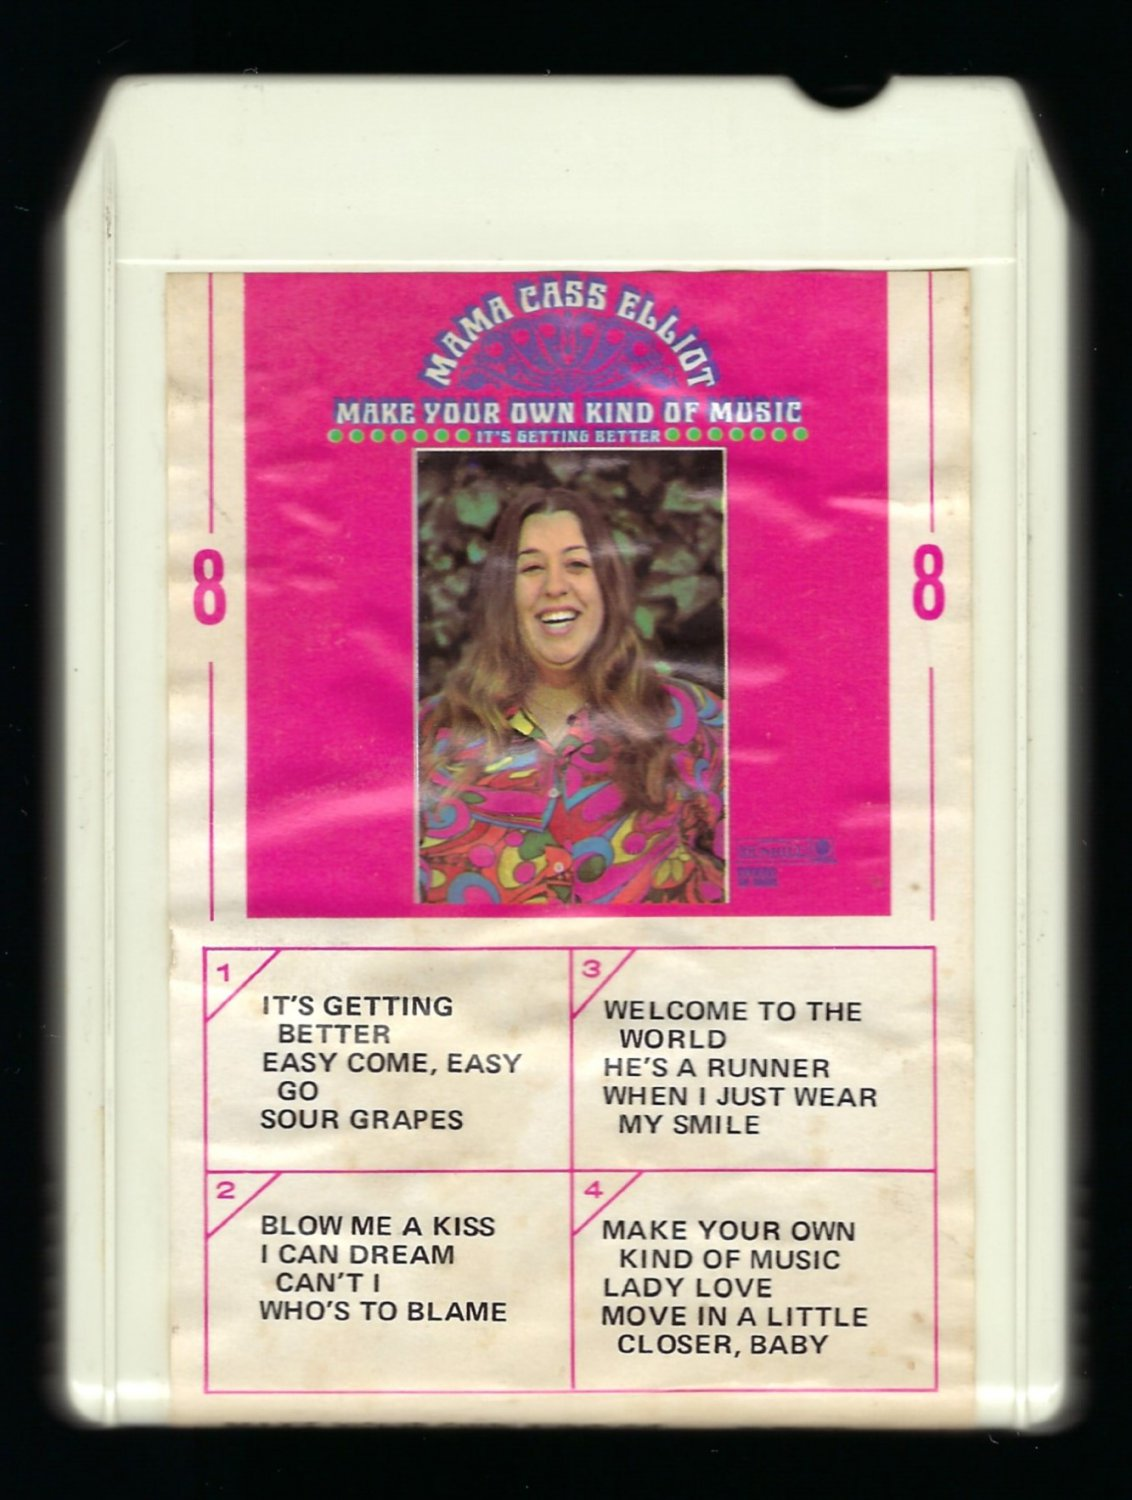 Mama Cass Elliot - Make Your Own Kind Of Music 1969 LEAR AMPEX DUNHILL T10 8-TRACK TAPE